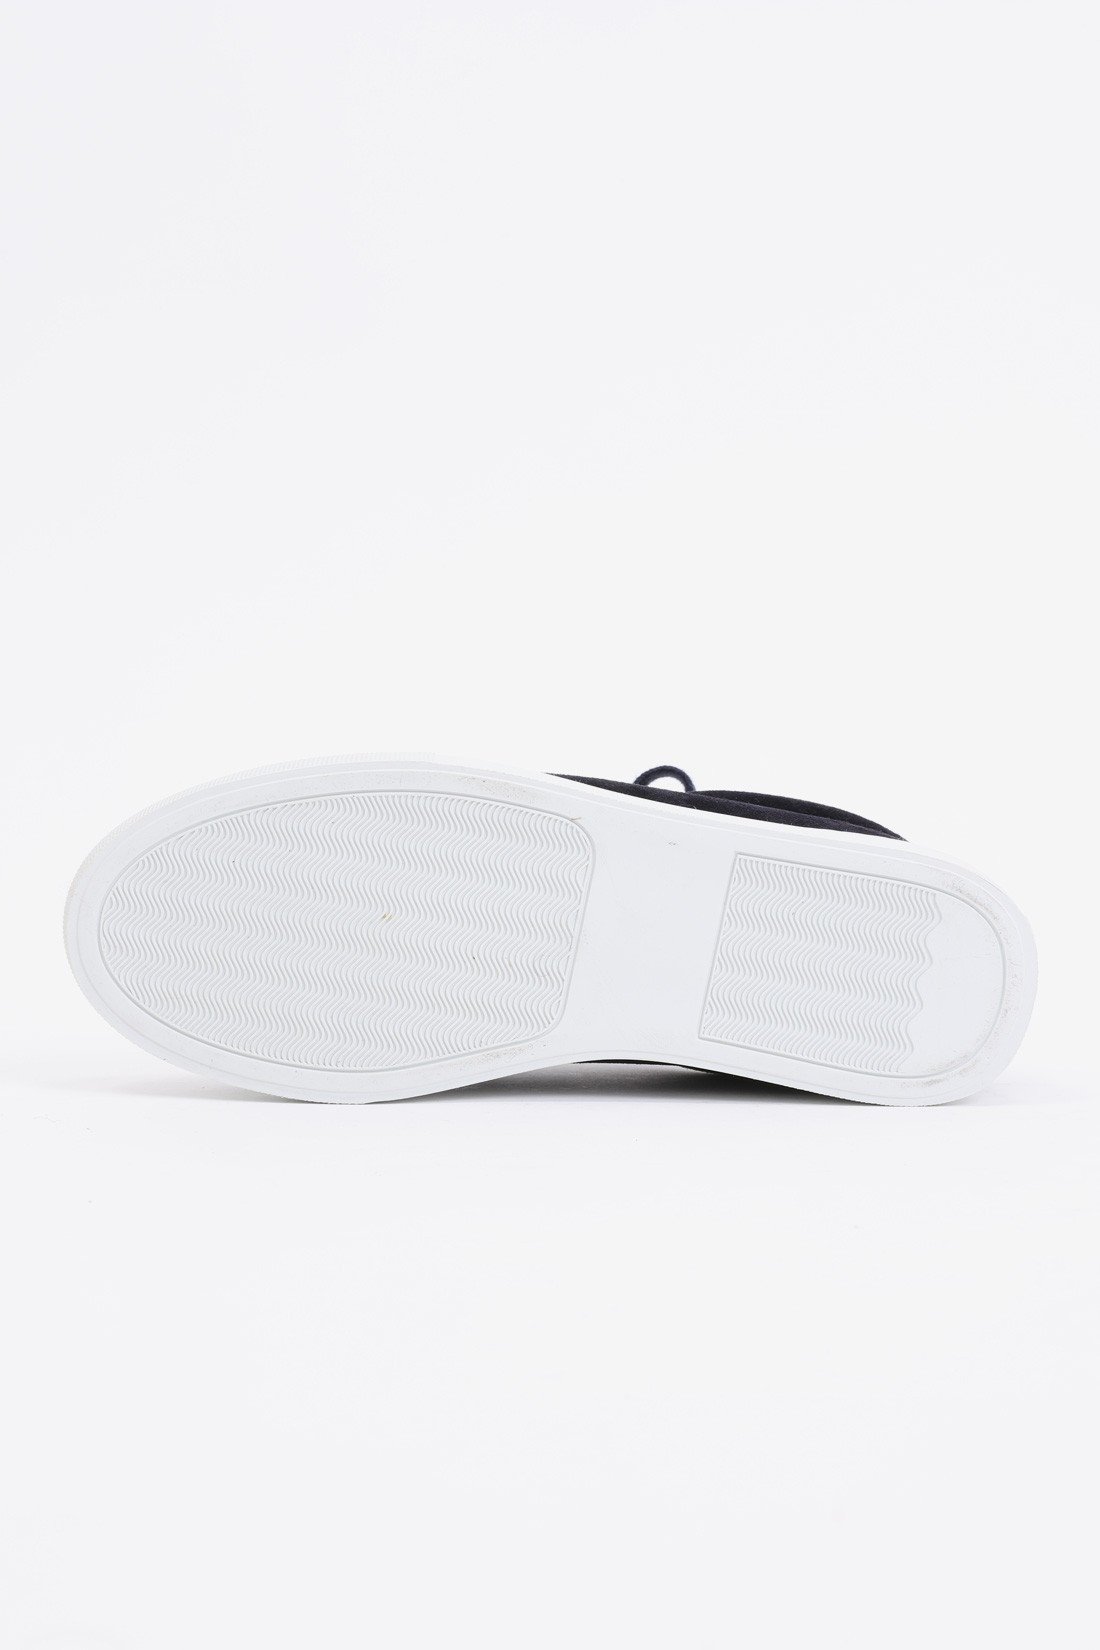 / Zsp4 suede outsole white Navy sherling